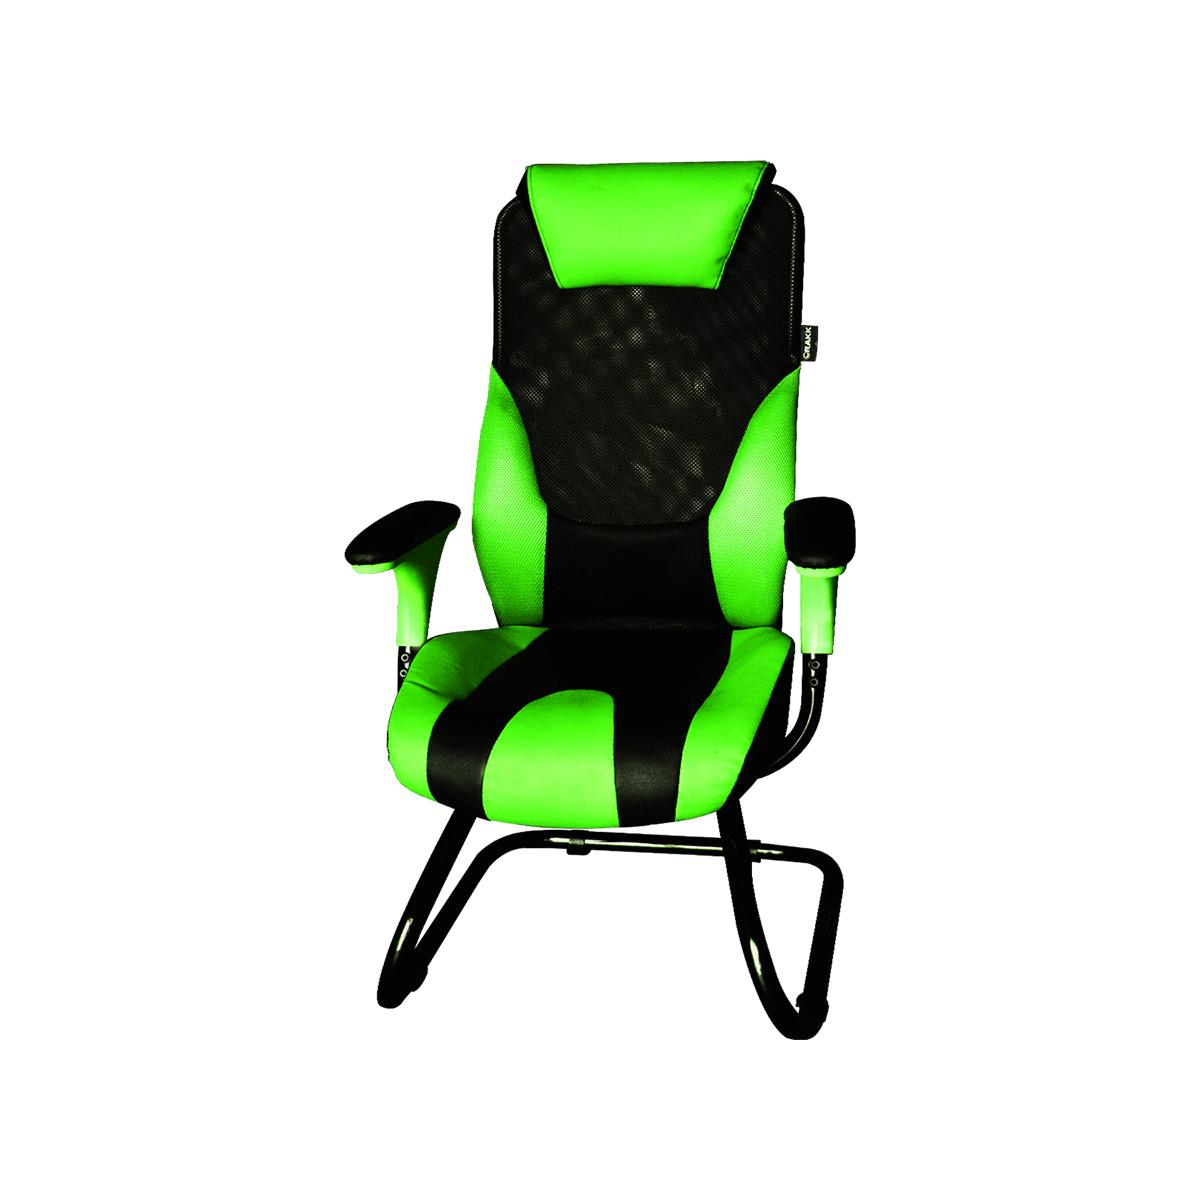 Peachy Rakk Alo Gaming Chair Green Ergonomic Chair Best Seller For Icafe And Esports Affordable Gaming Chair With Headrest Foam And S Curved Rakk Gears Squirreltailoven Fun Painted Chair Ideas Images Squirreltailovenorg